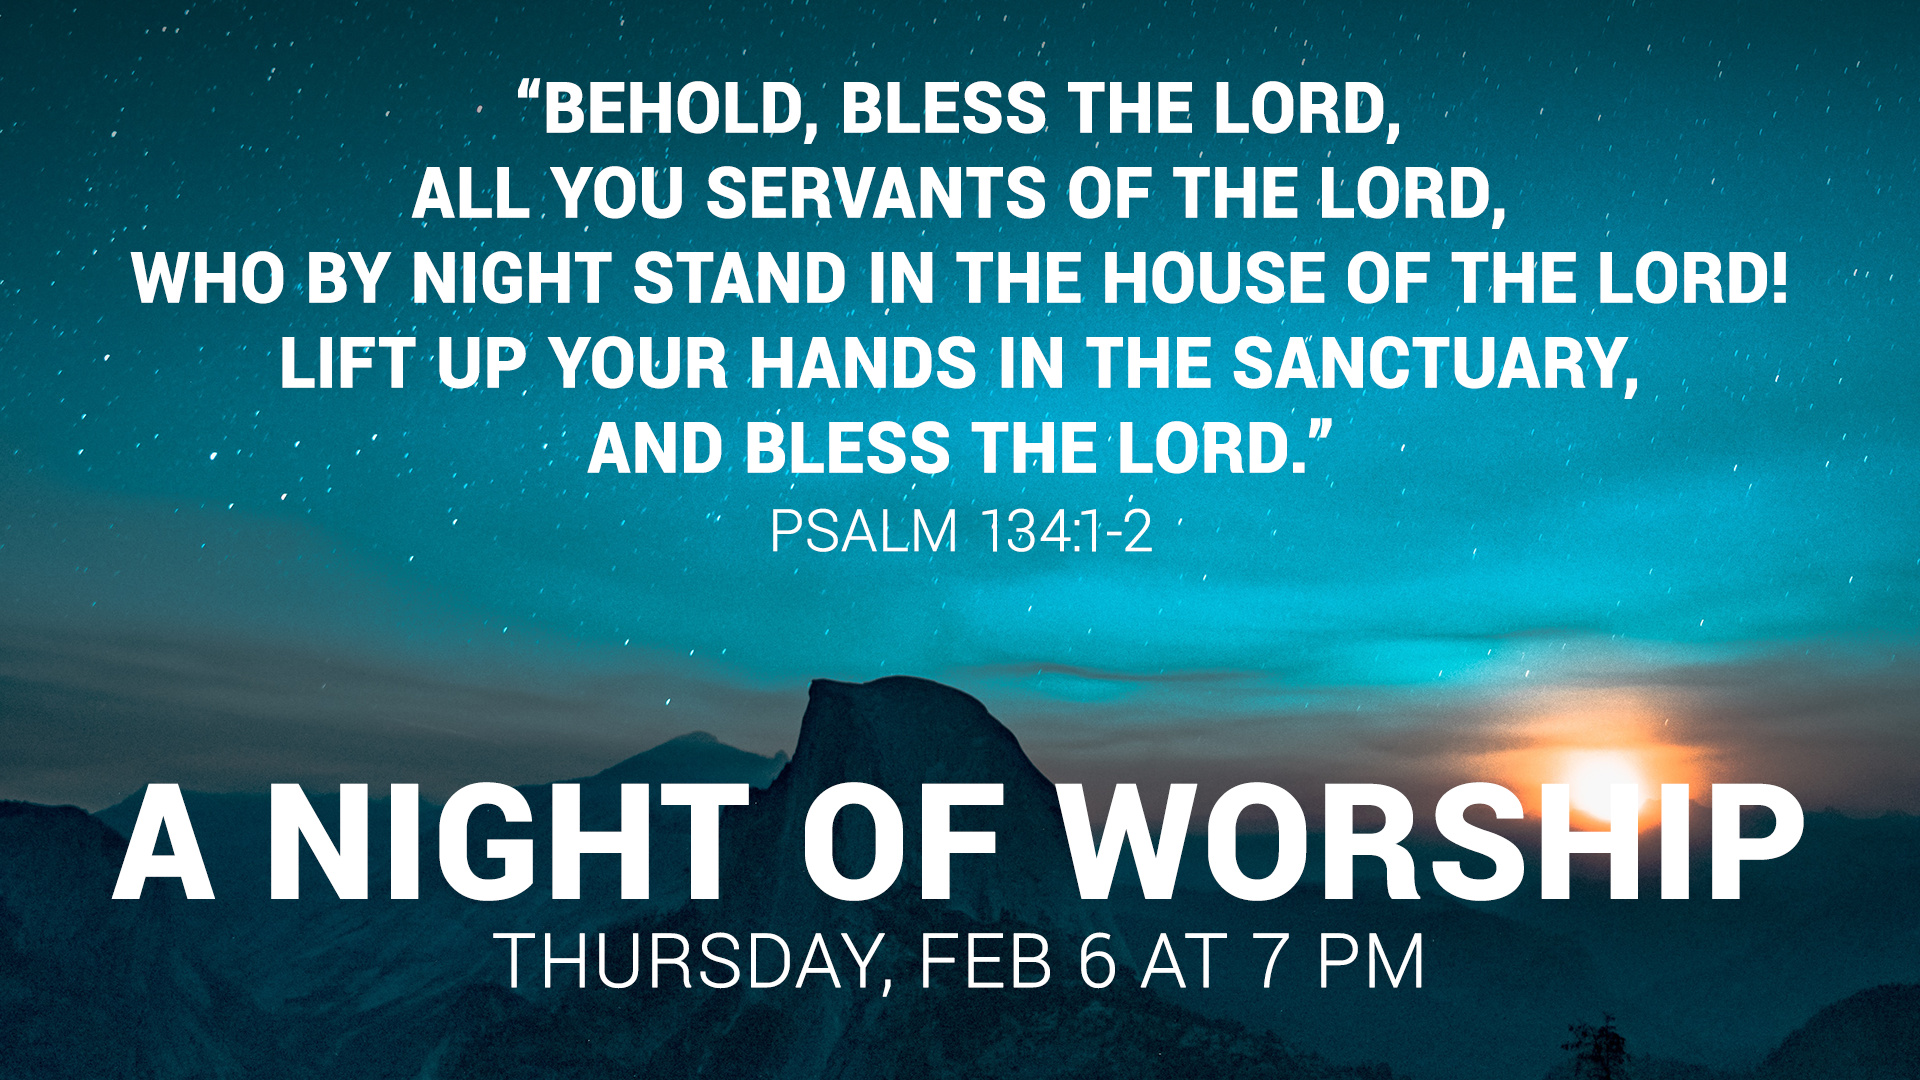 Join us for our next Night of Worship, Thursday Feb 6 at 7 PM